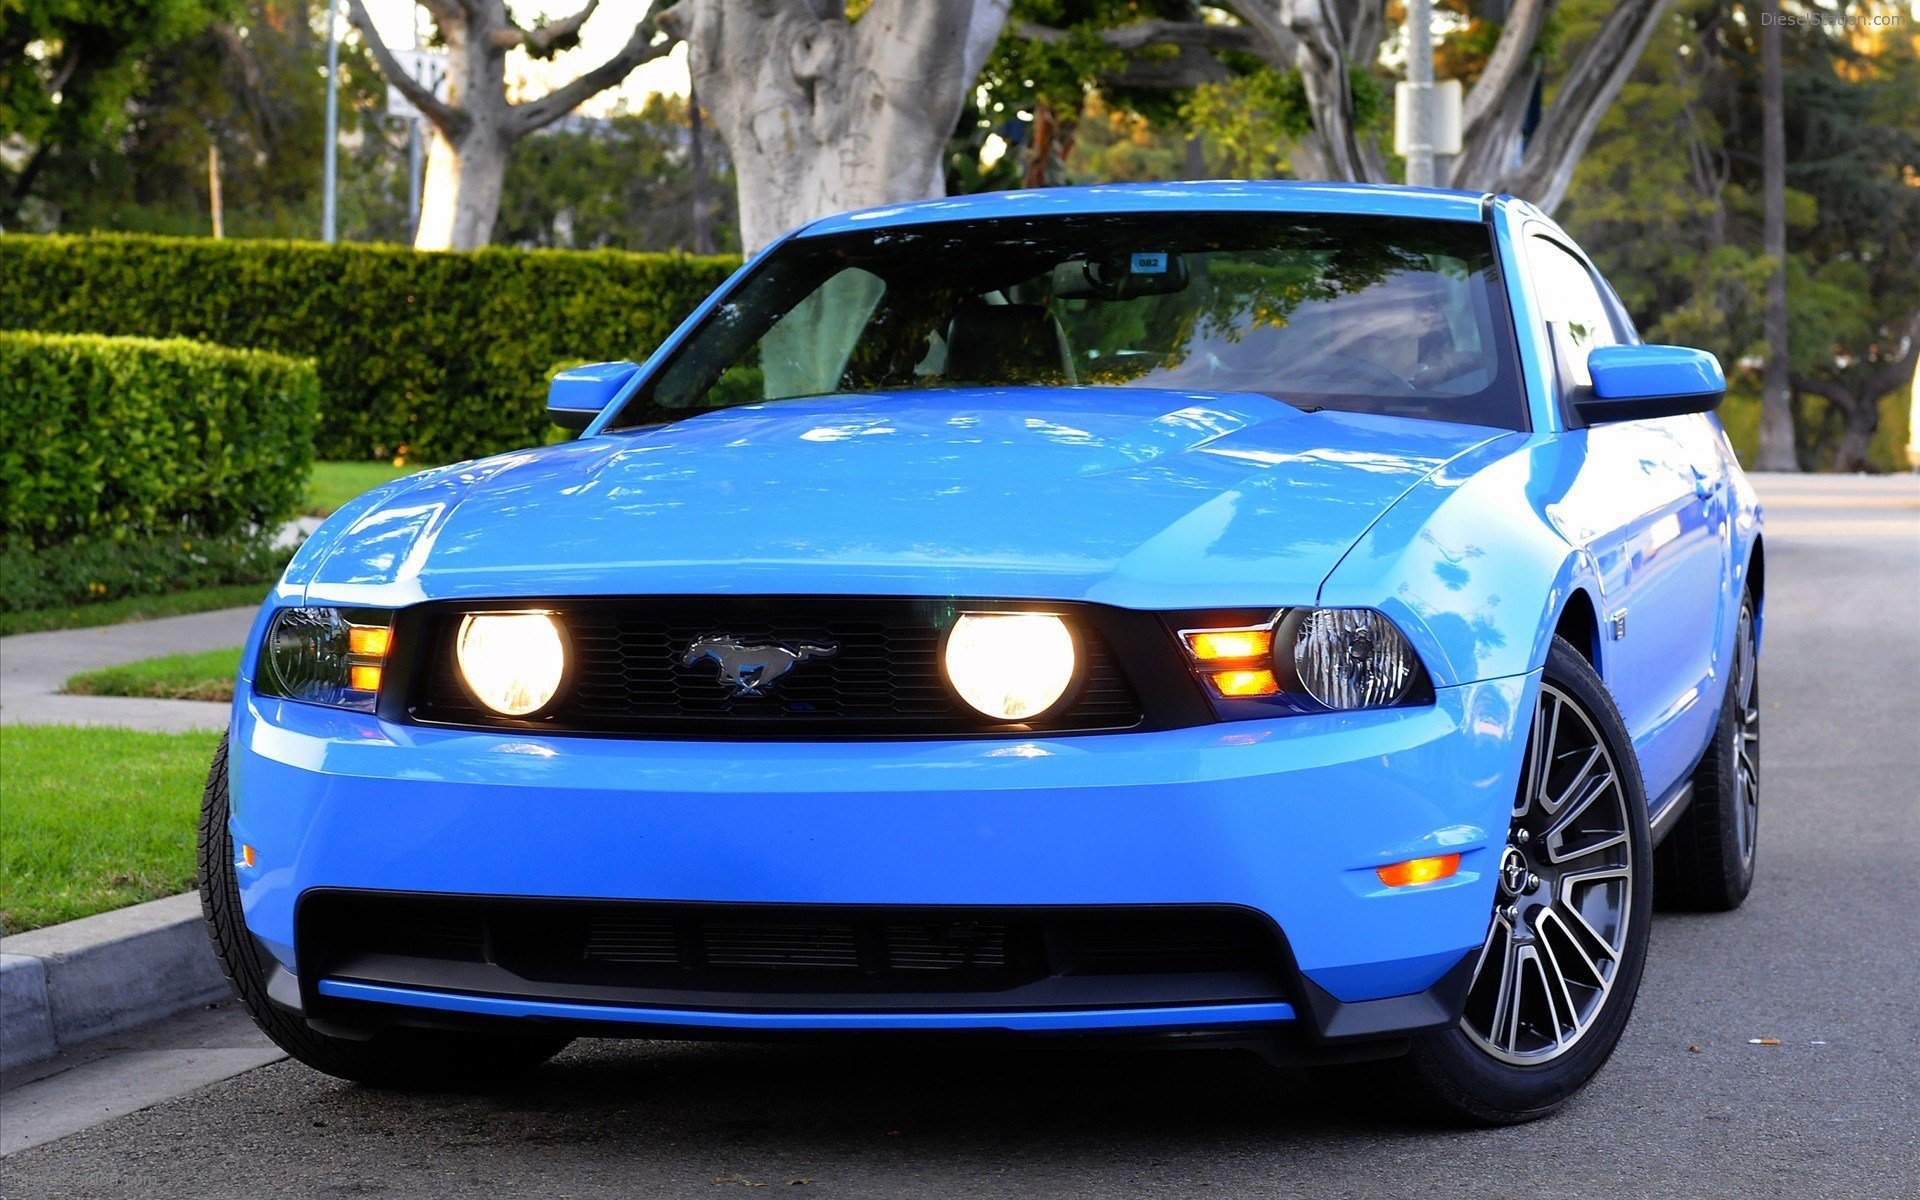 Latest 2010 Ford Mustang Gt Widescreen Exotic Car Image 10 Of 24 Free Download